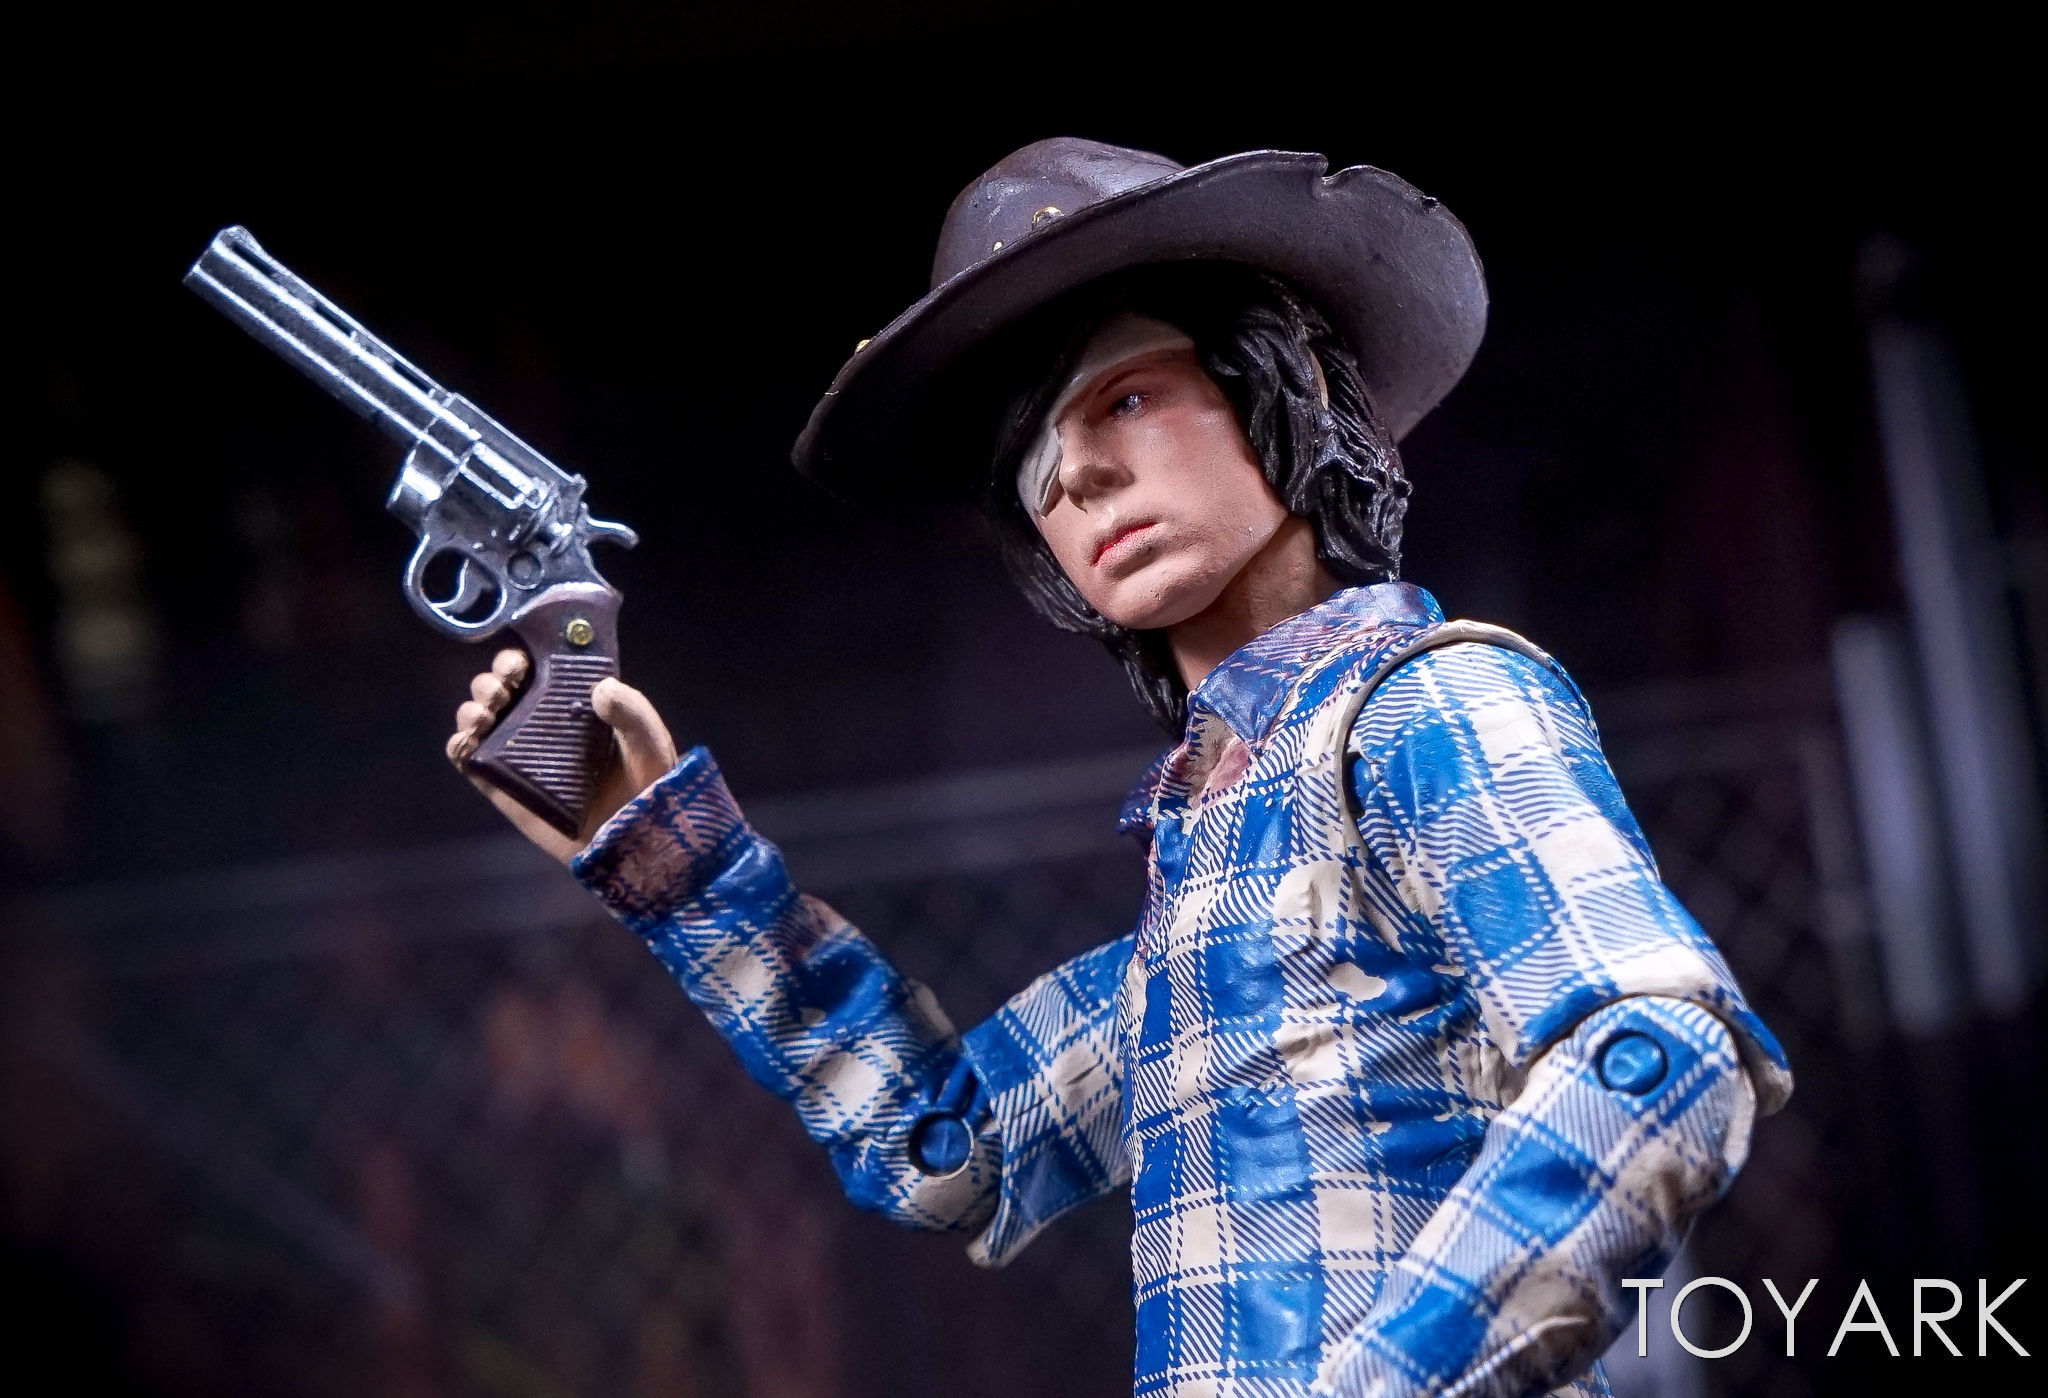 http://news.toyark.com/wp-content/uploads/sites/4/2017/03/McFarlane-Color-Tops-Walking-Dead-Carl-Grimes-041.jpg